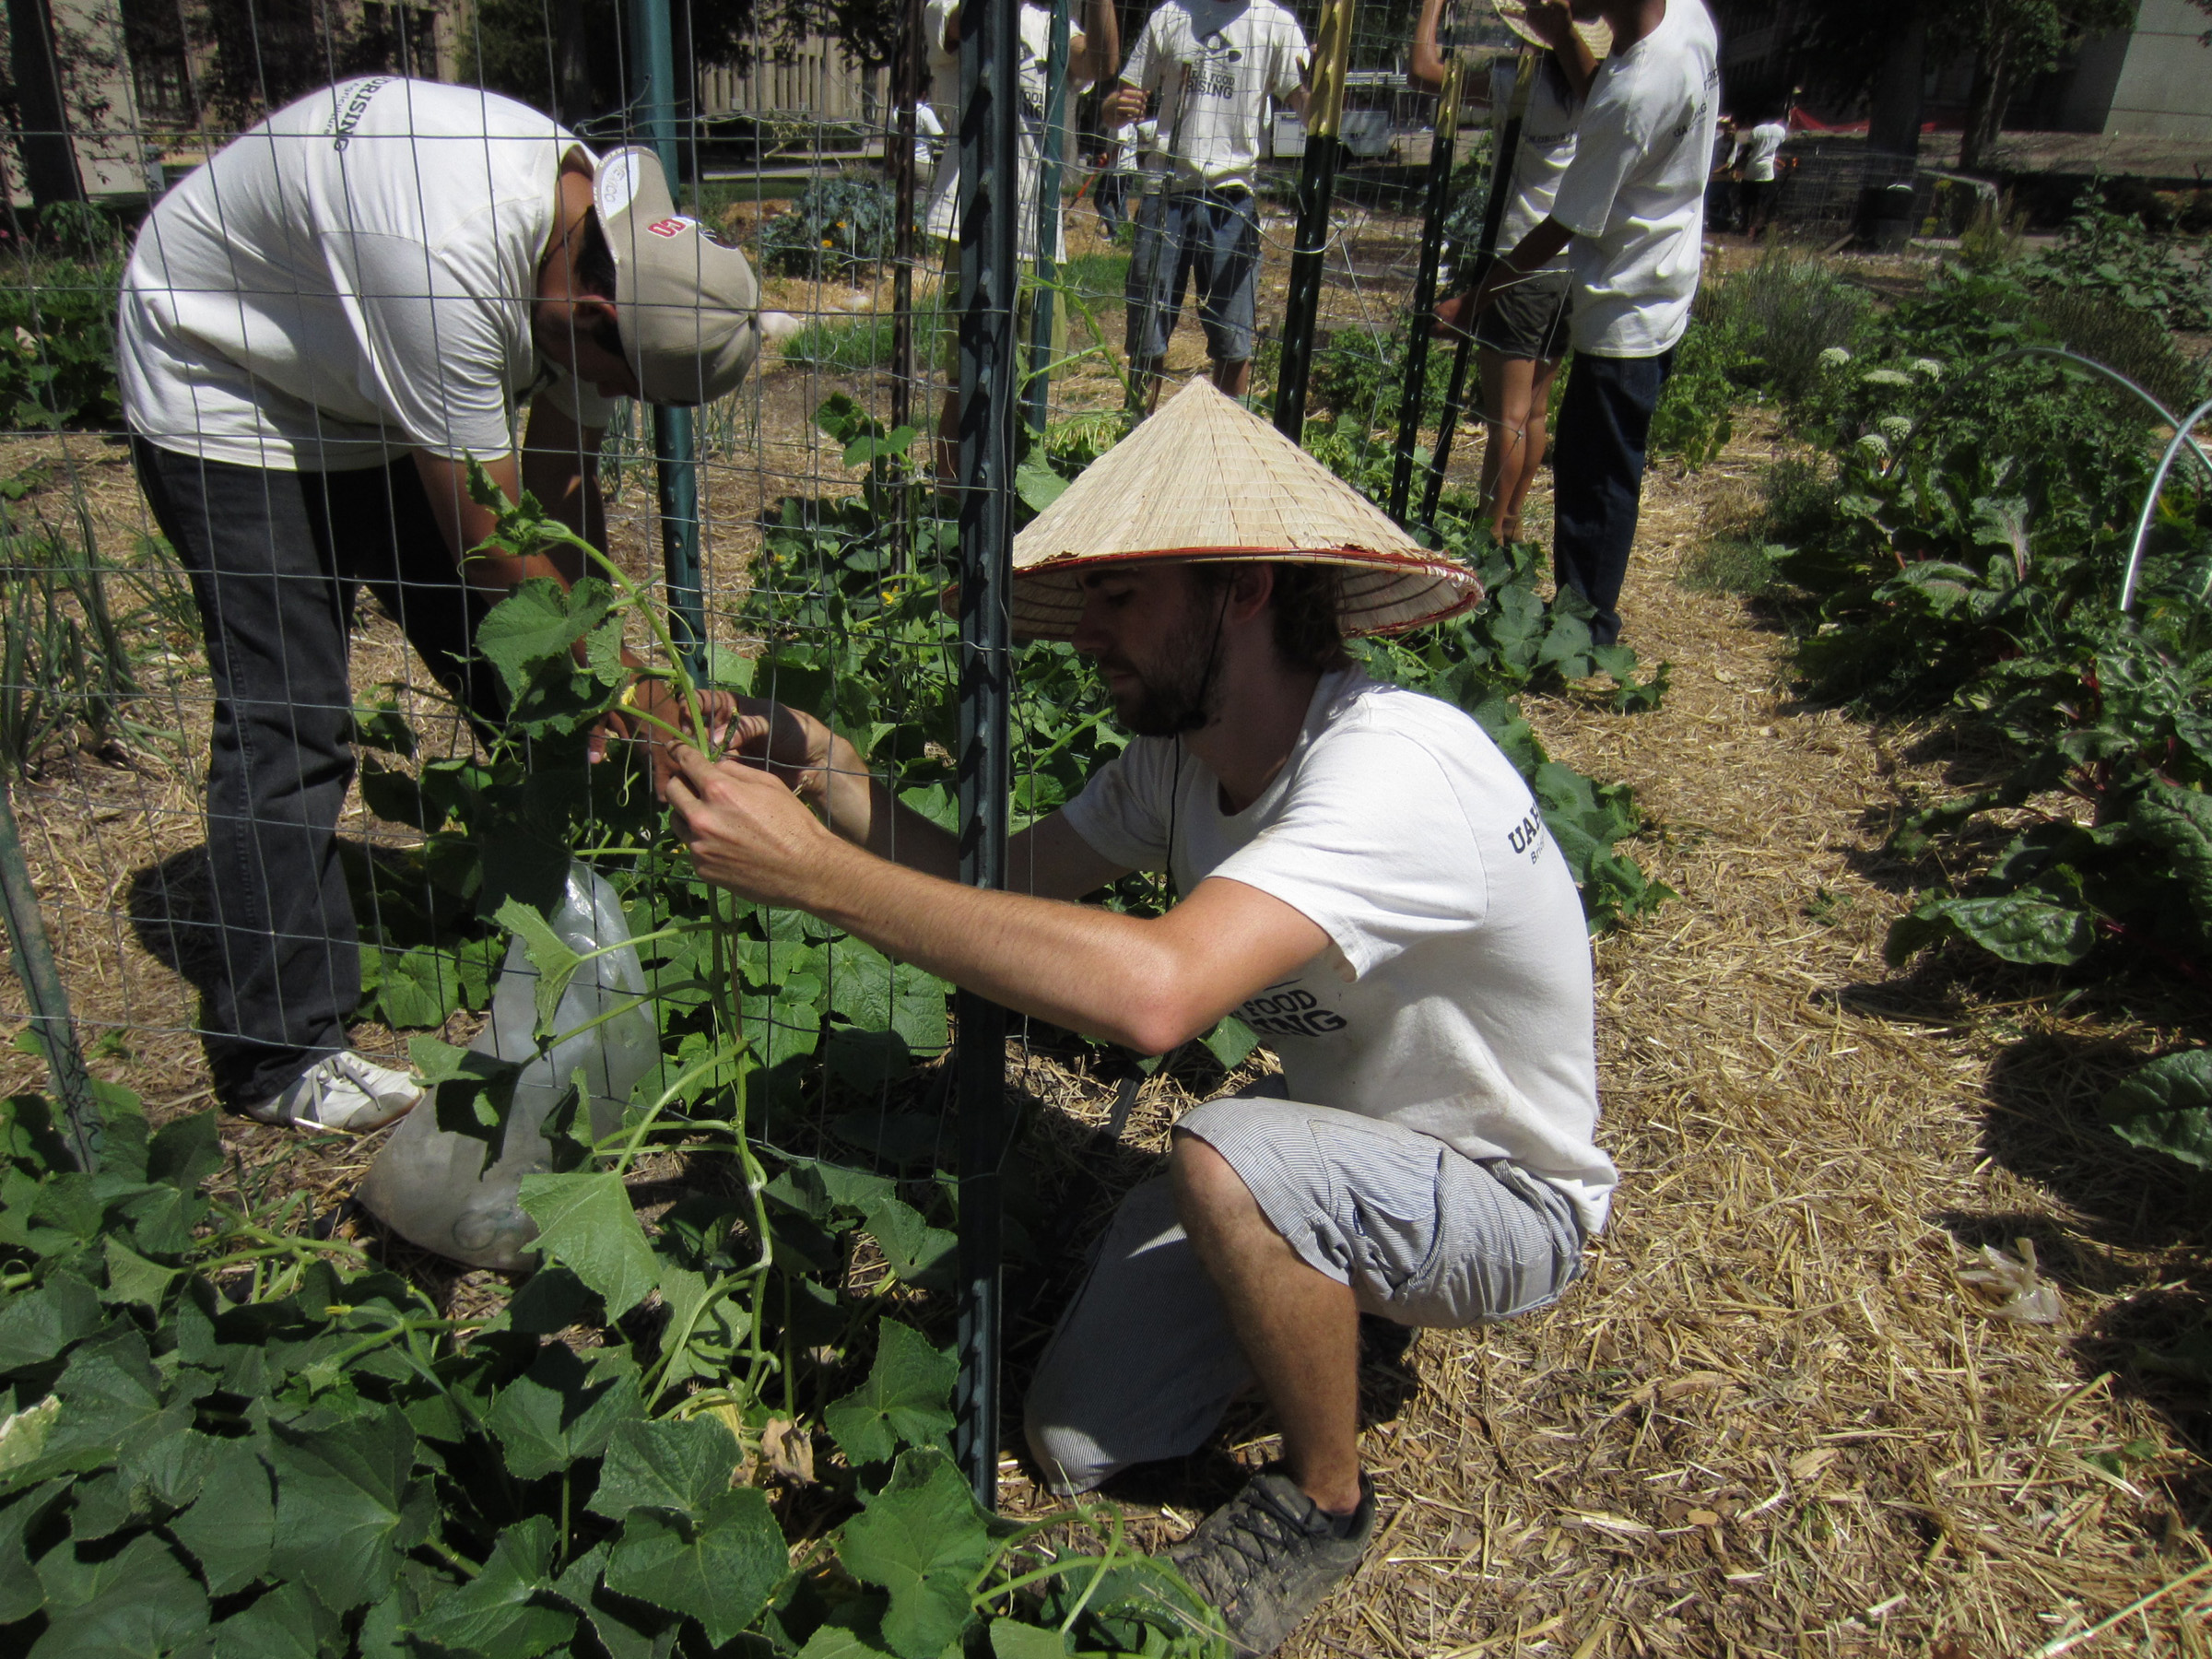 Students learn about sustainable food systems while working in the campus garden.